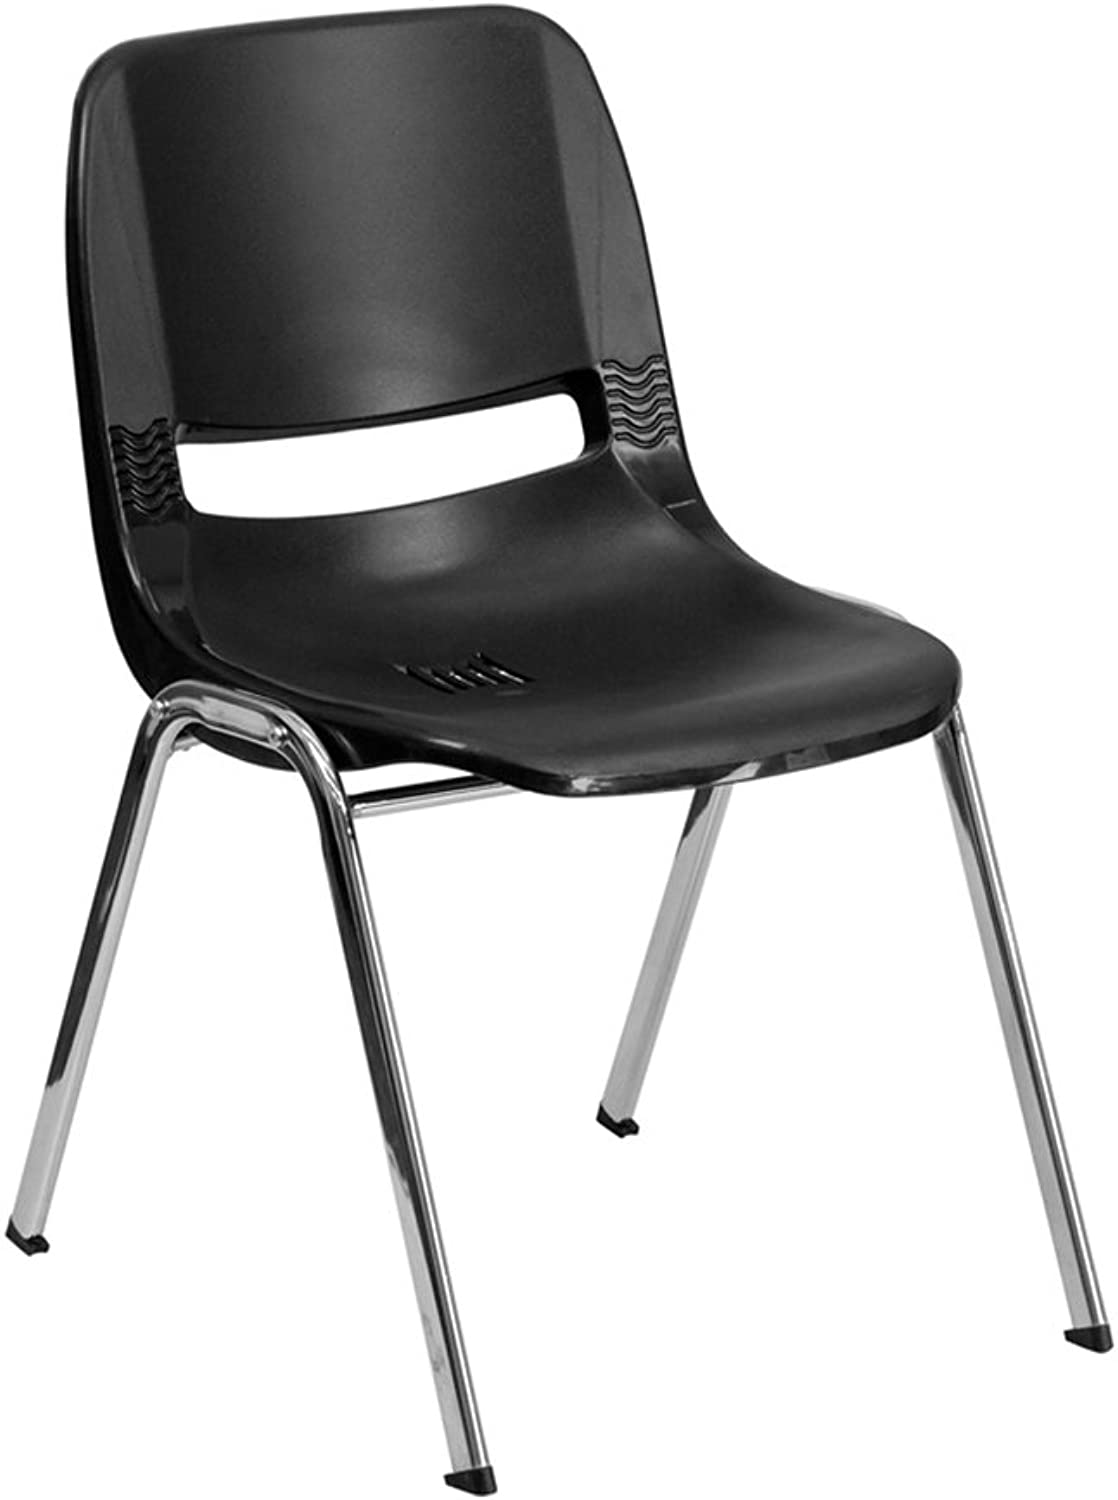 Offex OF-RUT-12-BK-CHR-GG Hercules Series 440 -Pound Capacity Black Ergonomic Shell Stack Chair with Chrome Frame, 12-Inch